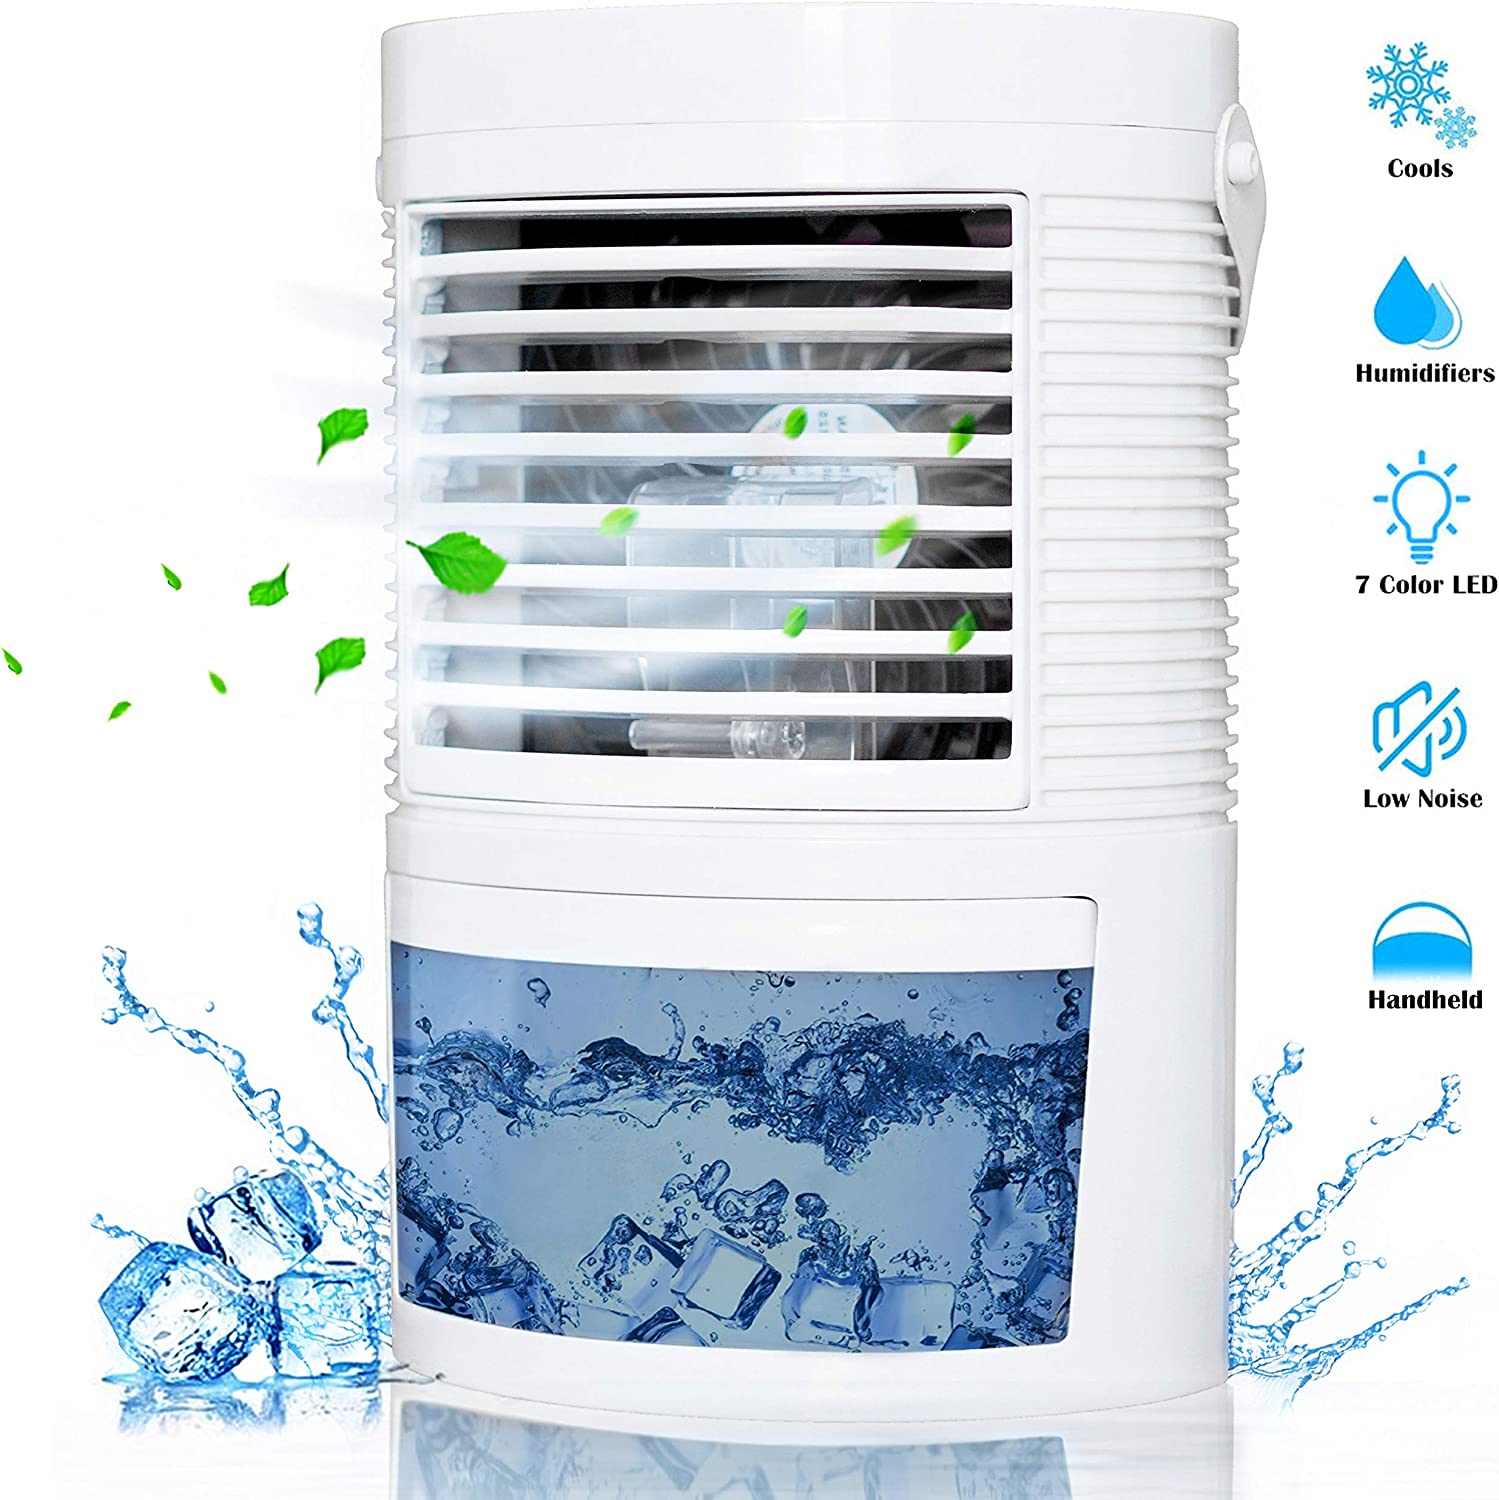 DAYSALE Personal Air Cooler,Portable Air Cooler,Mini Space Cooler, Desktop Air Conditioning Fan with 3 Wind Speeds/7 Night Lights/Handle Cooler Air Humidifier for Home, Office and Room (White)